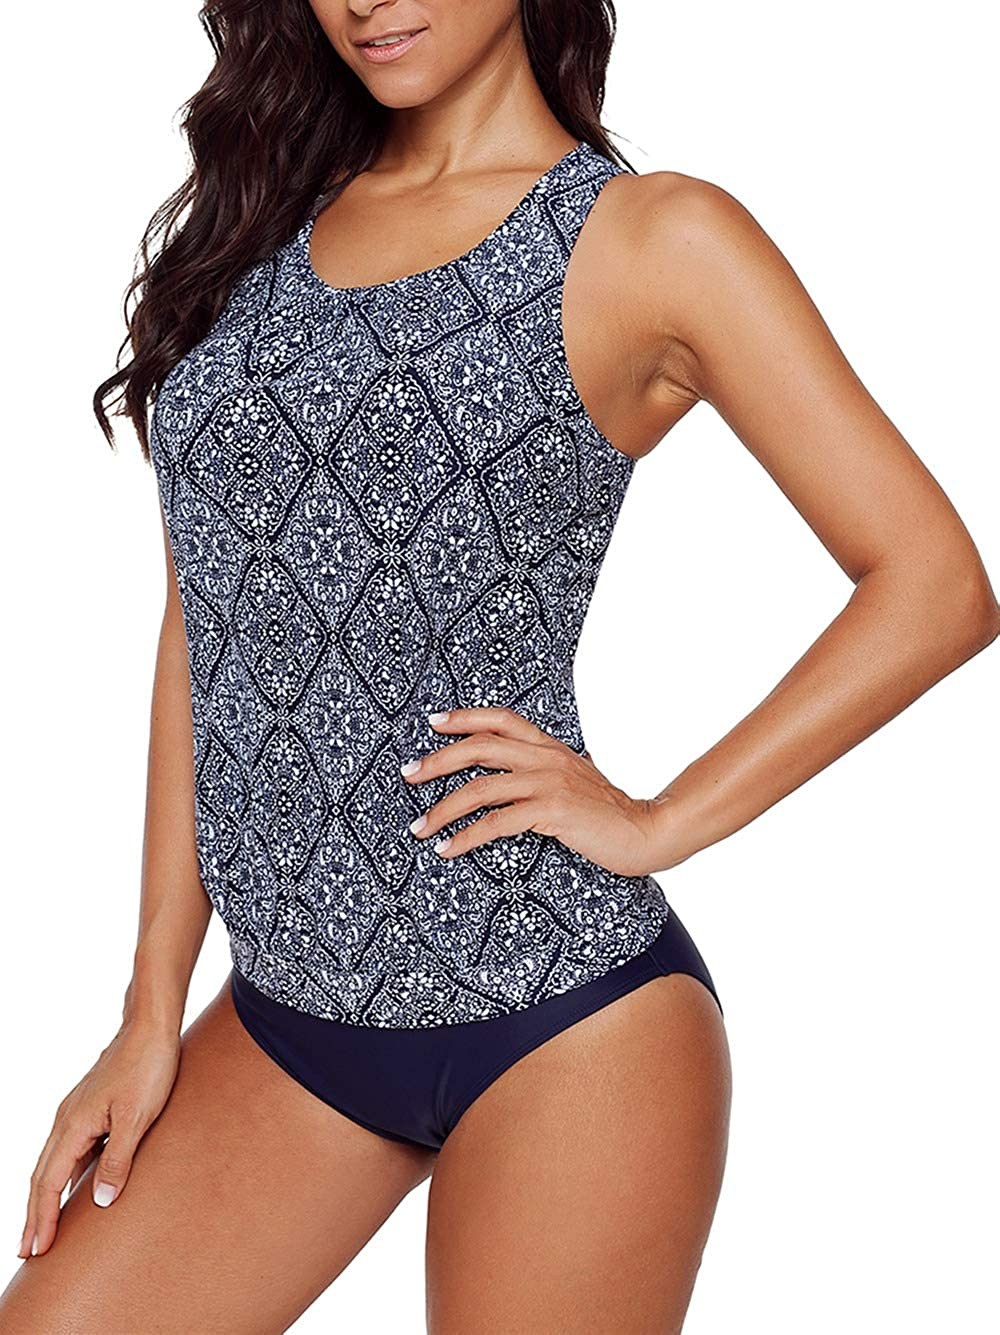 5b93dbcd934d2 Happy Sailed Women Push Up Padded Printed Sporty Tankini Swimsuits Bathing  Suit S-XXL at Amazon Women's Clothing store: